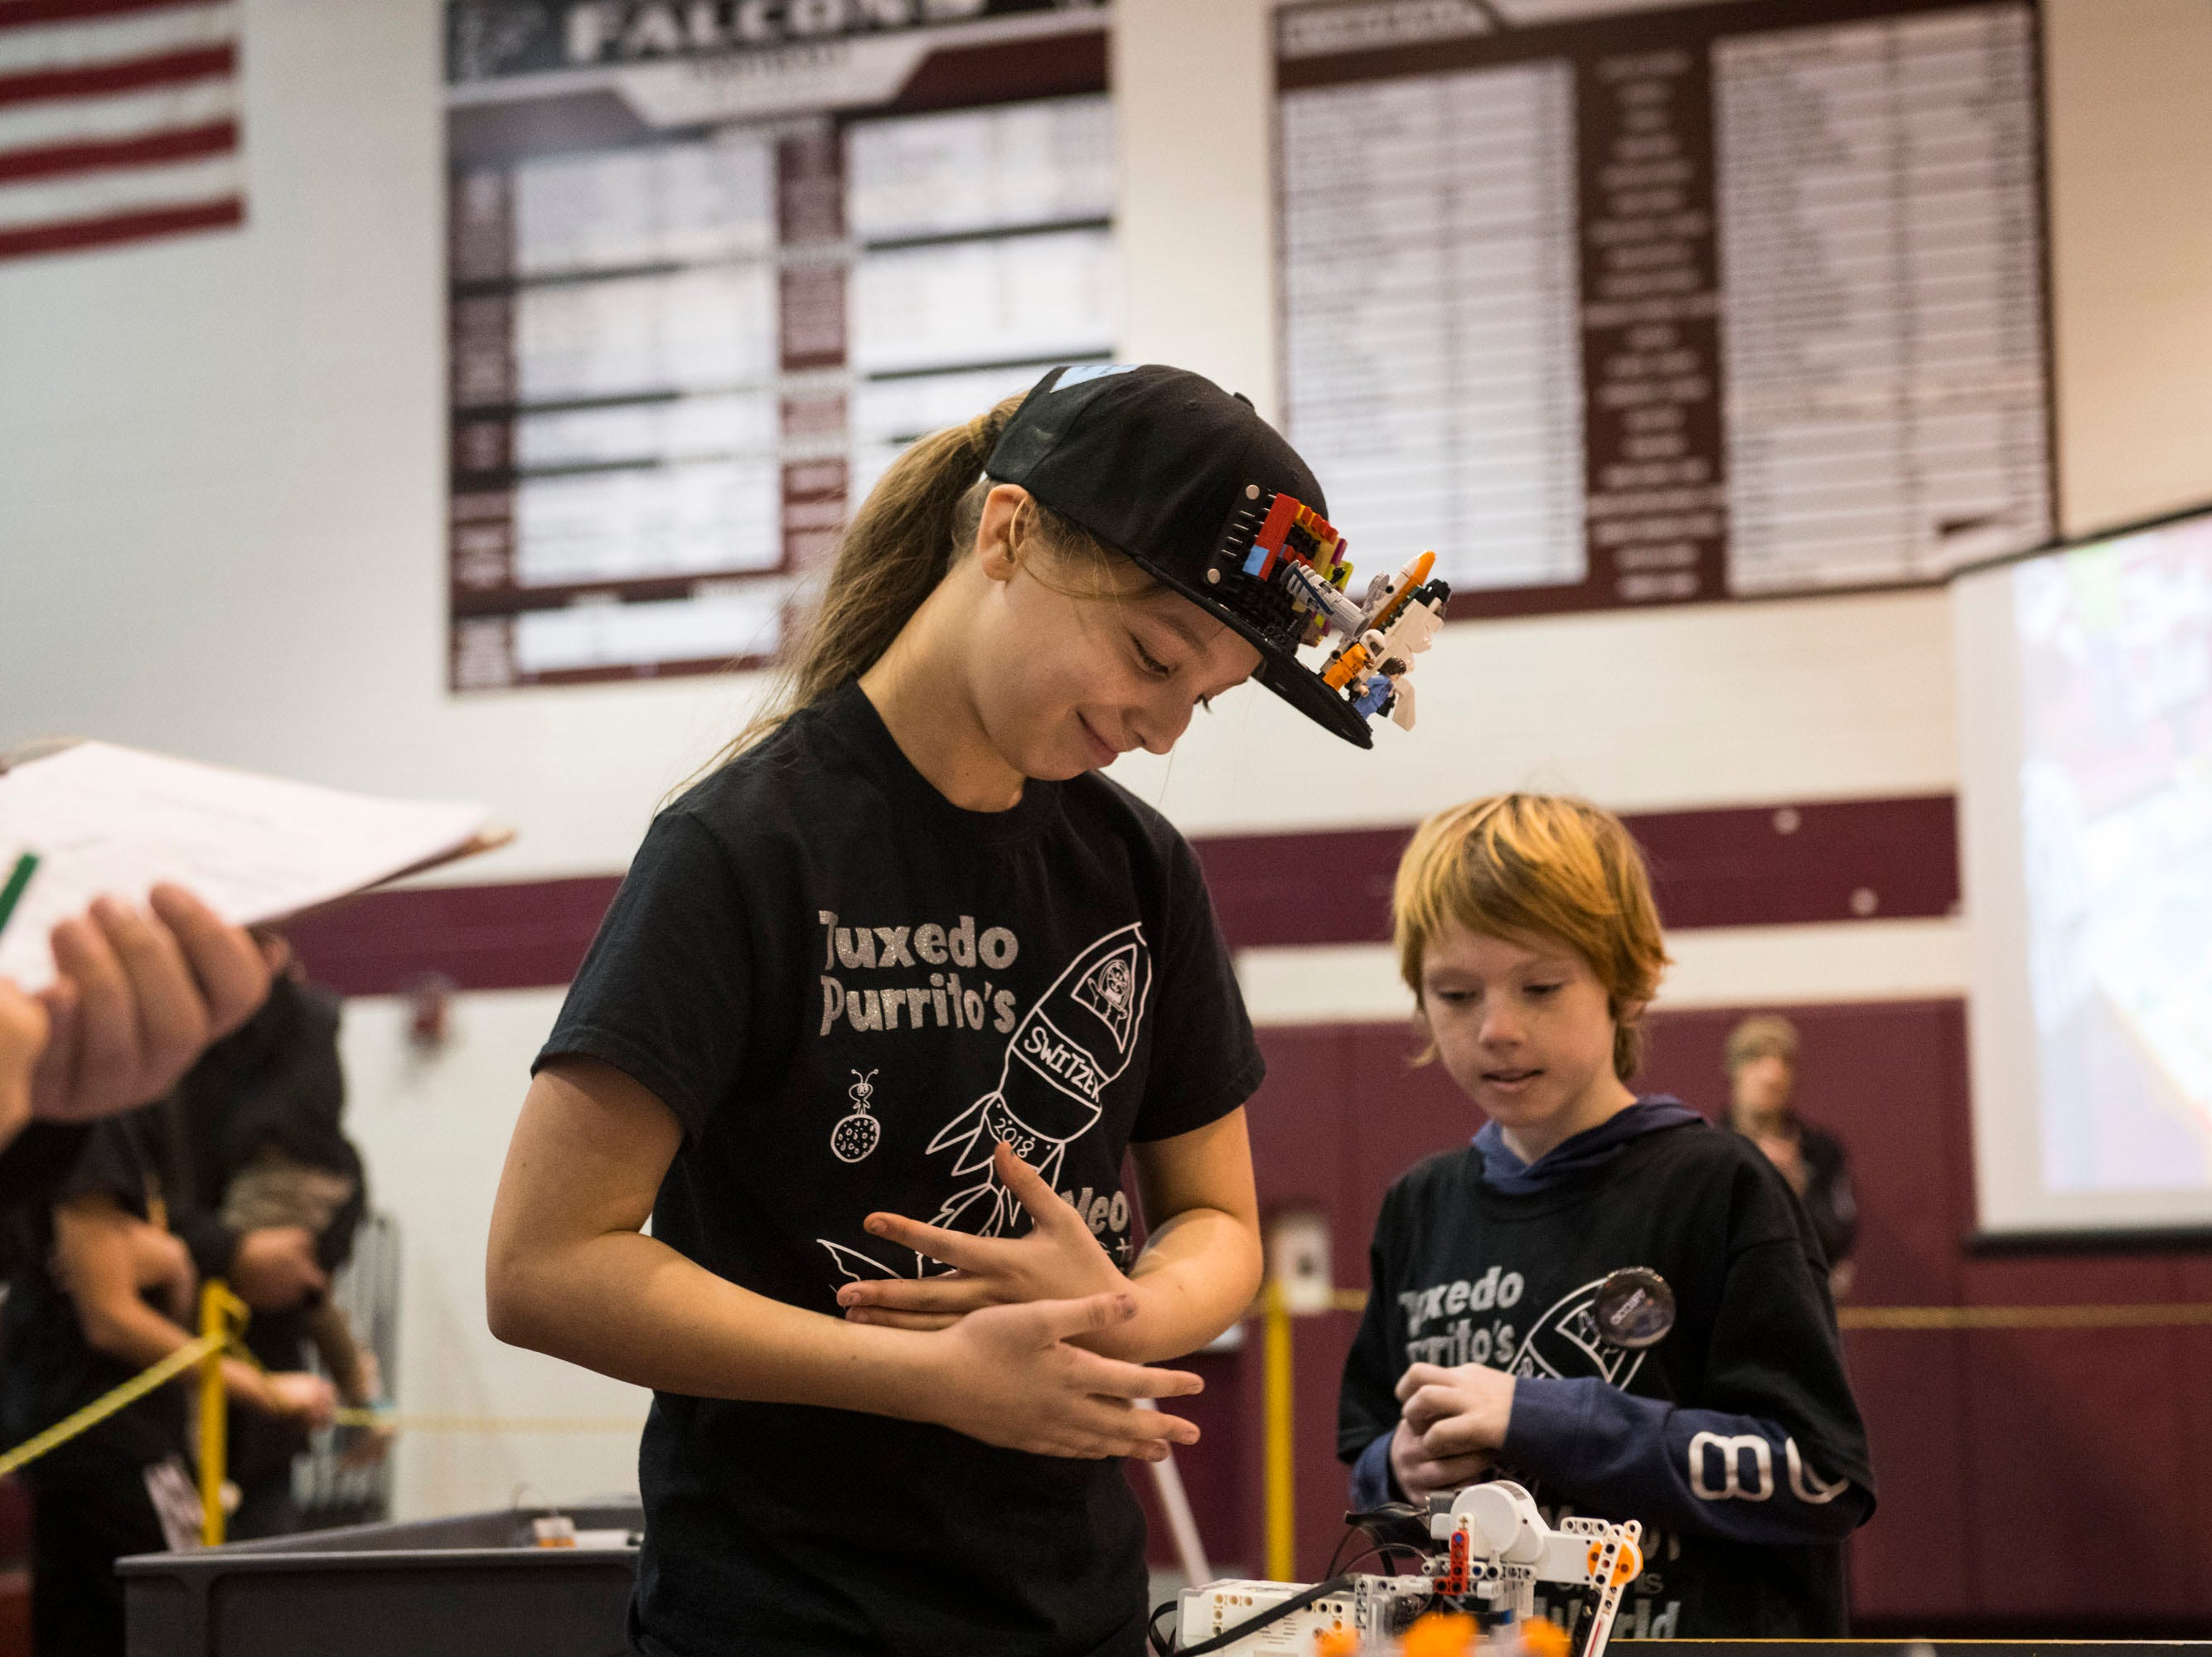 Natalie Palus, 11, of Shelby Township, a member of the Tuxedo Purritos robotics team, pauses after she and her teammate scored lower than they had hoped in a round of the competition.